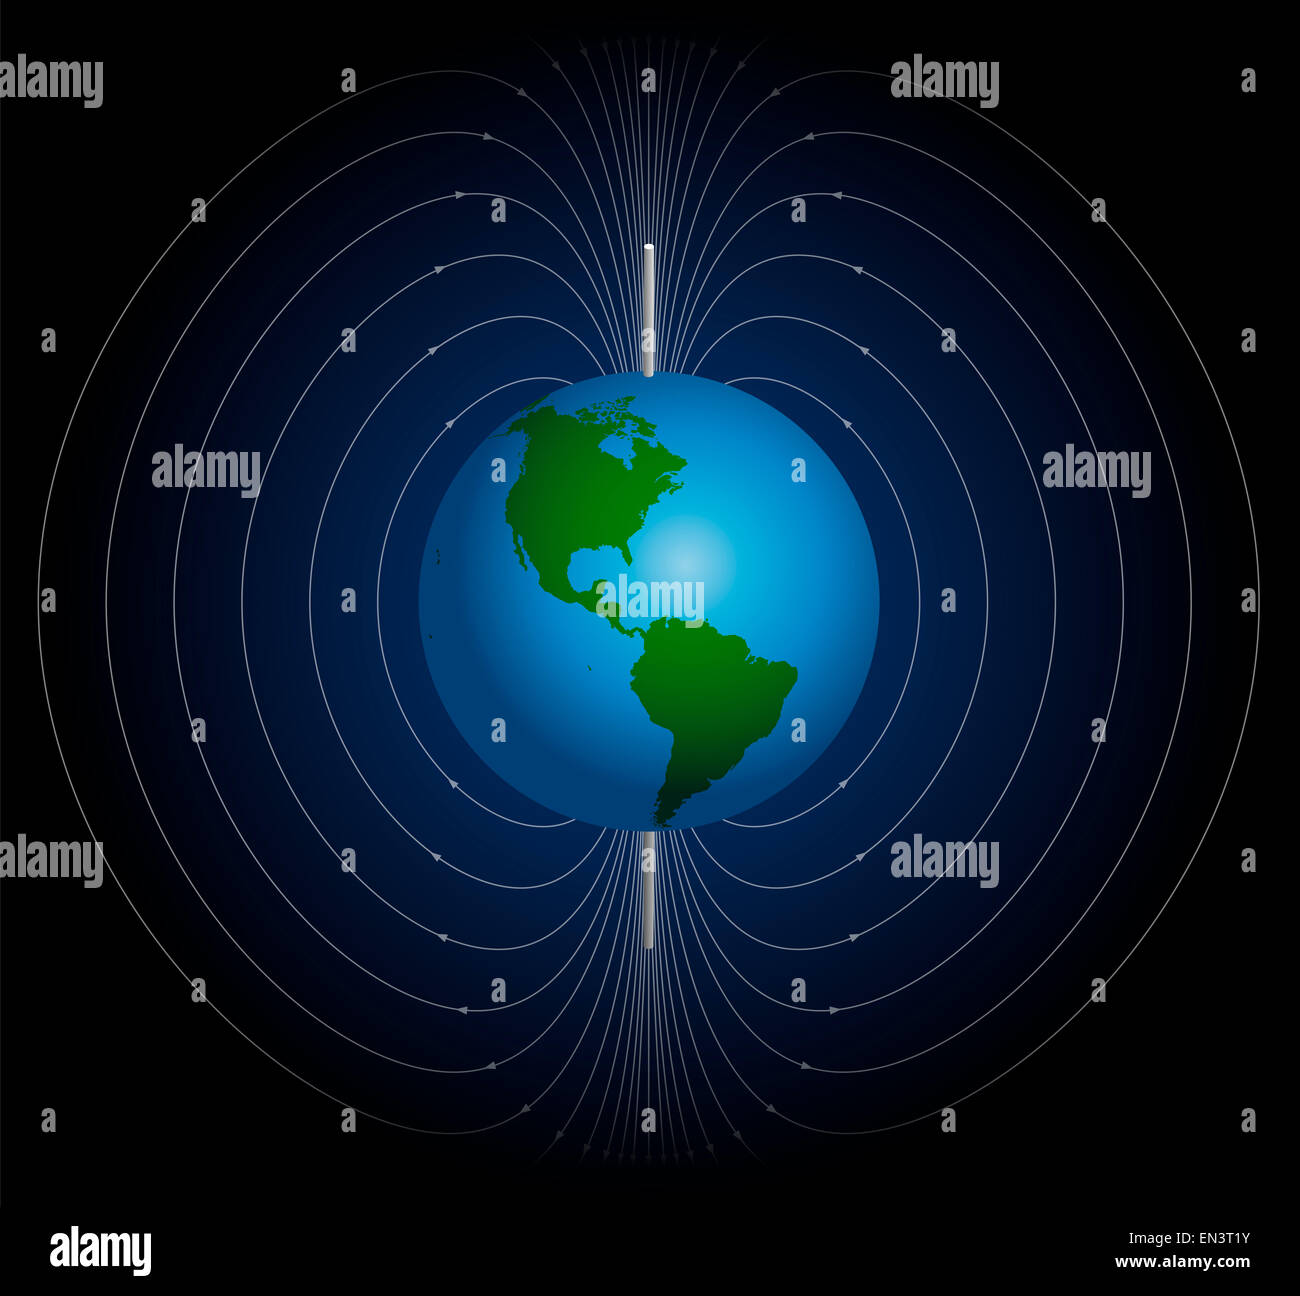 Terrestrial magnetic field around planet earth. - Stock Image